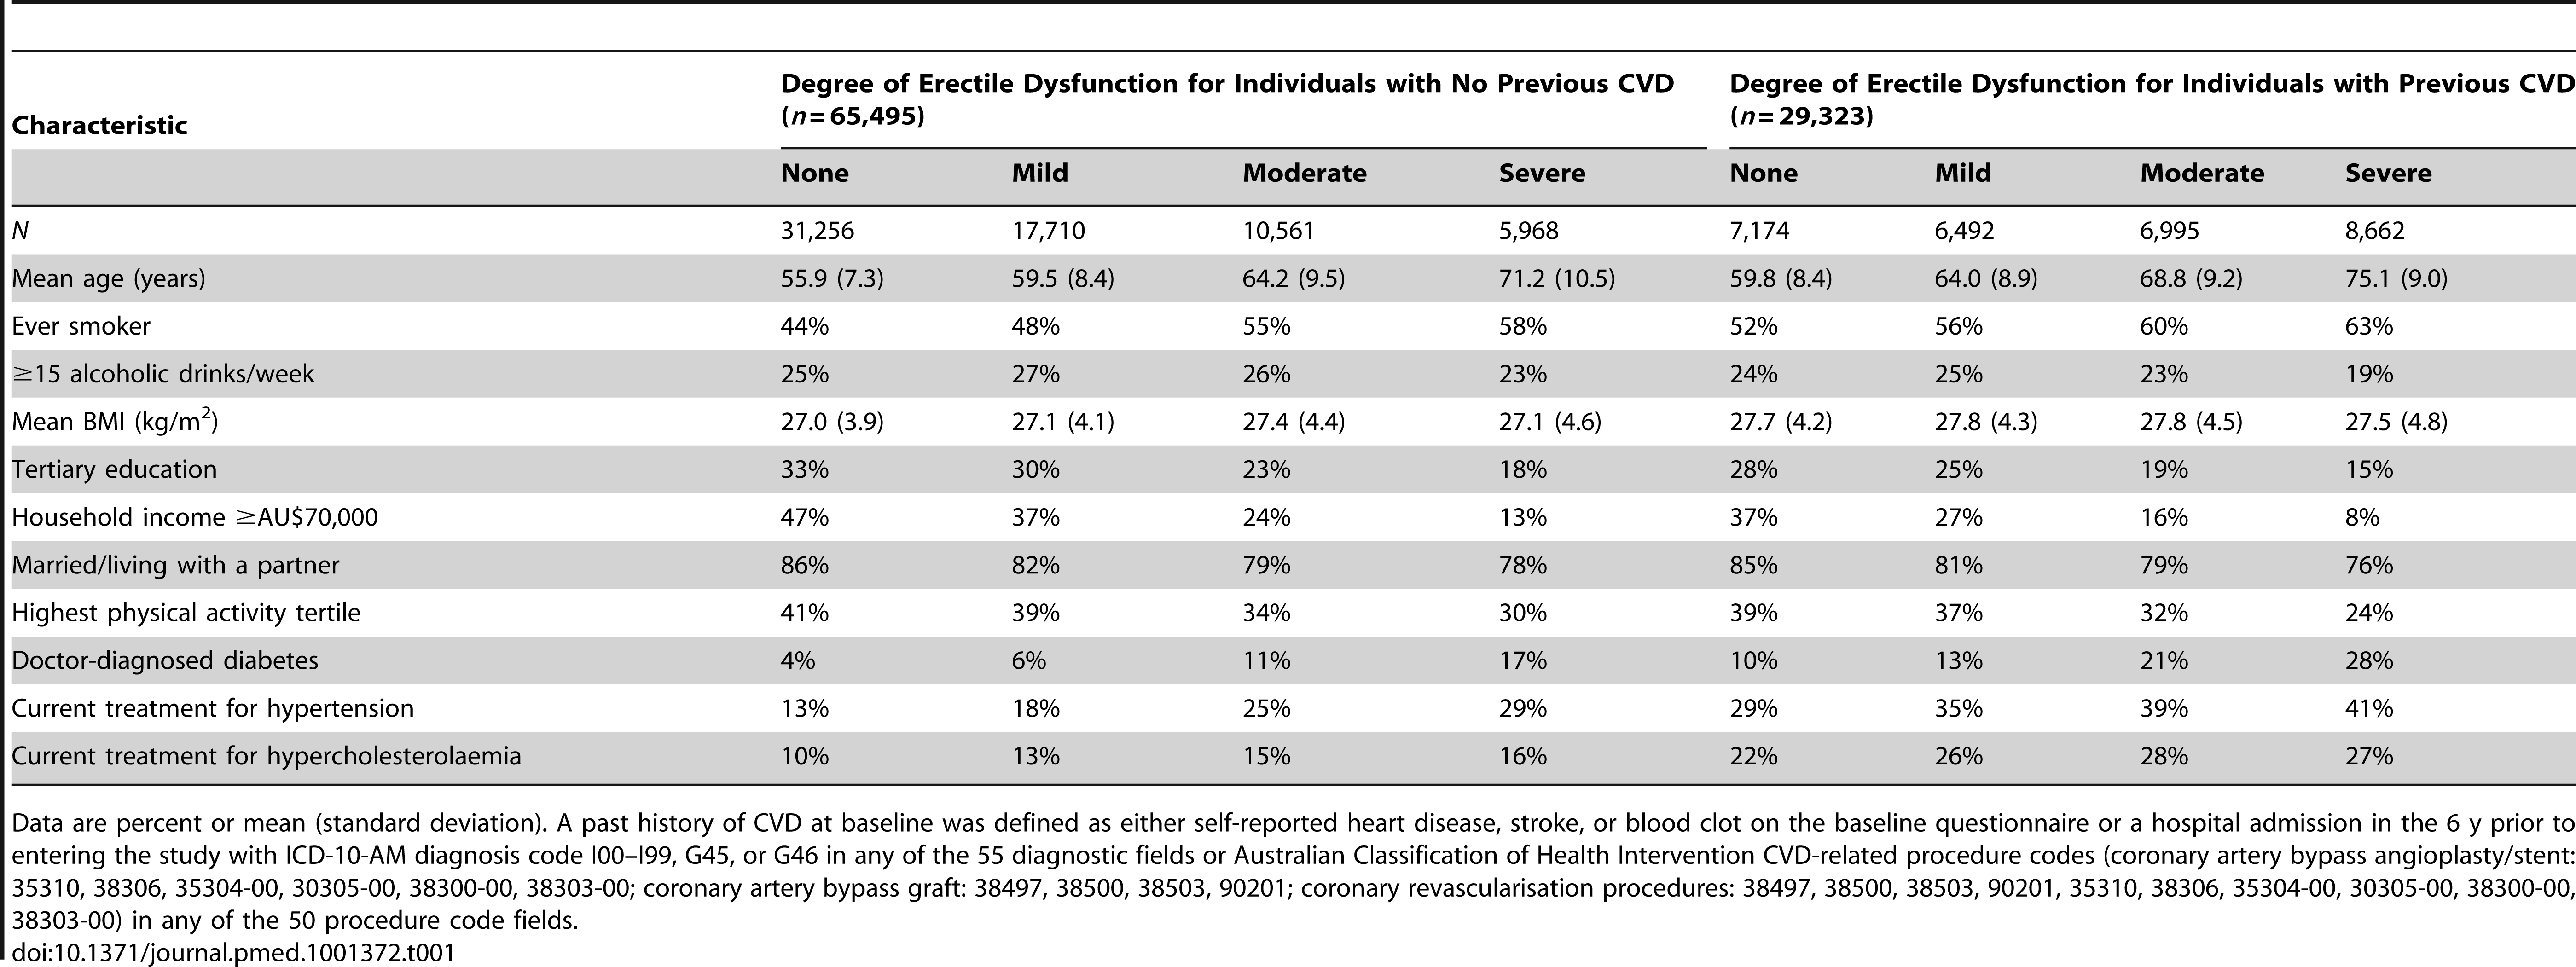 Characteristics of study population according to CVD history and degree of erectile dysfunction at baseline.